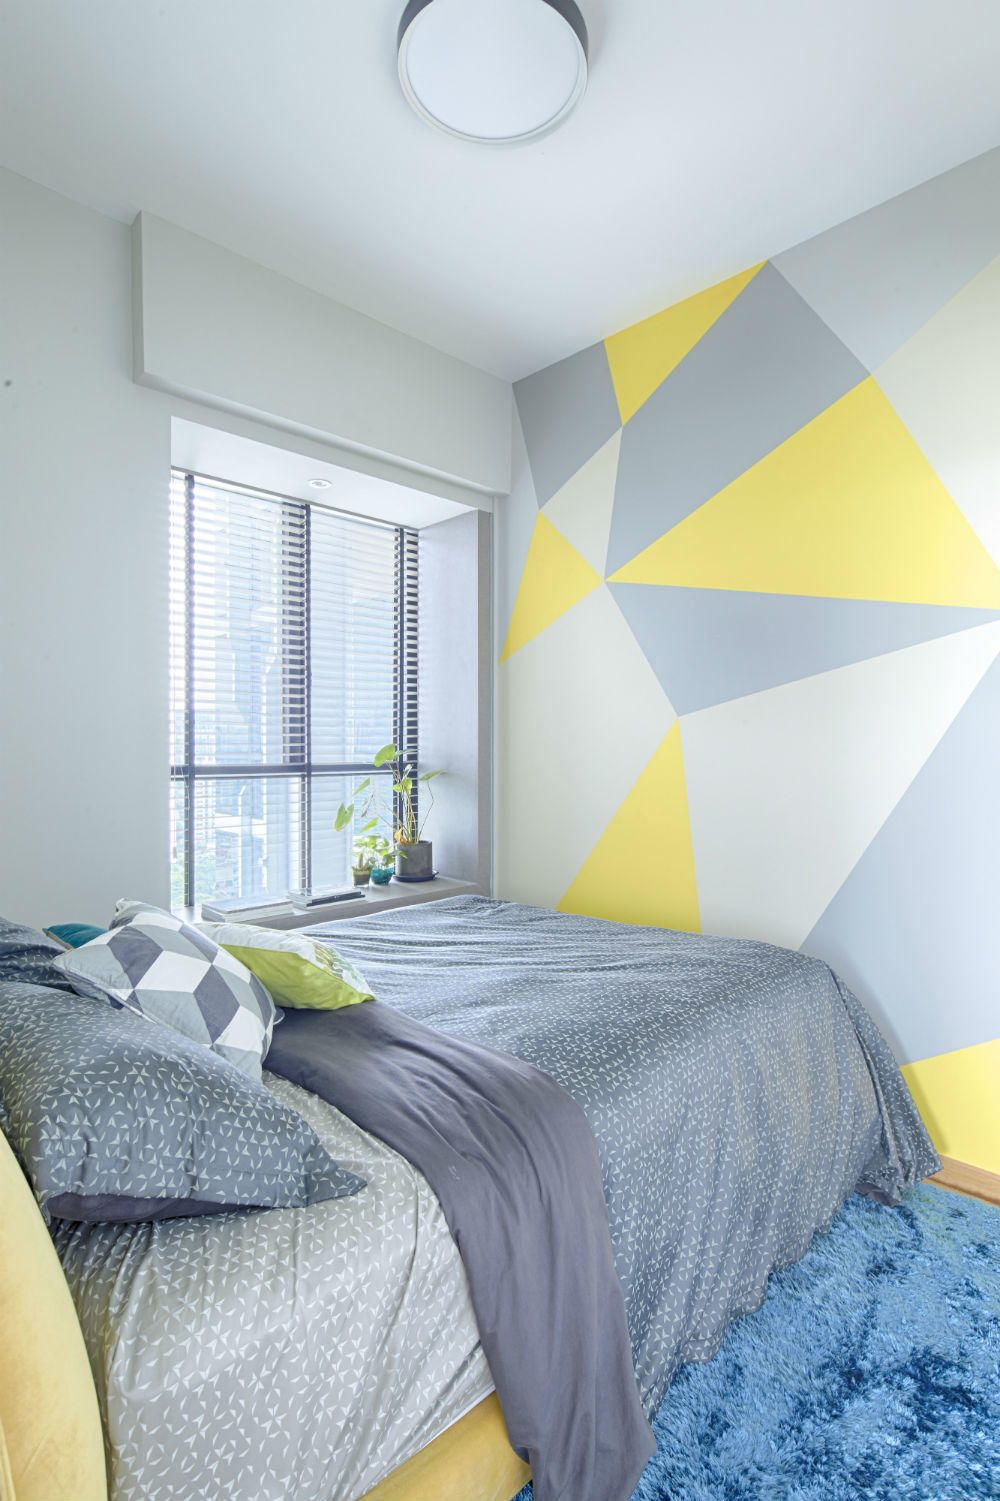 3 No Nos When Choosing A Paint Colour My Room In 2019 Wall Paint